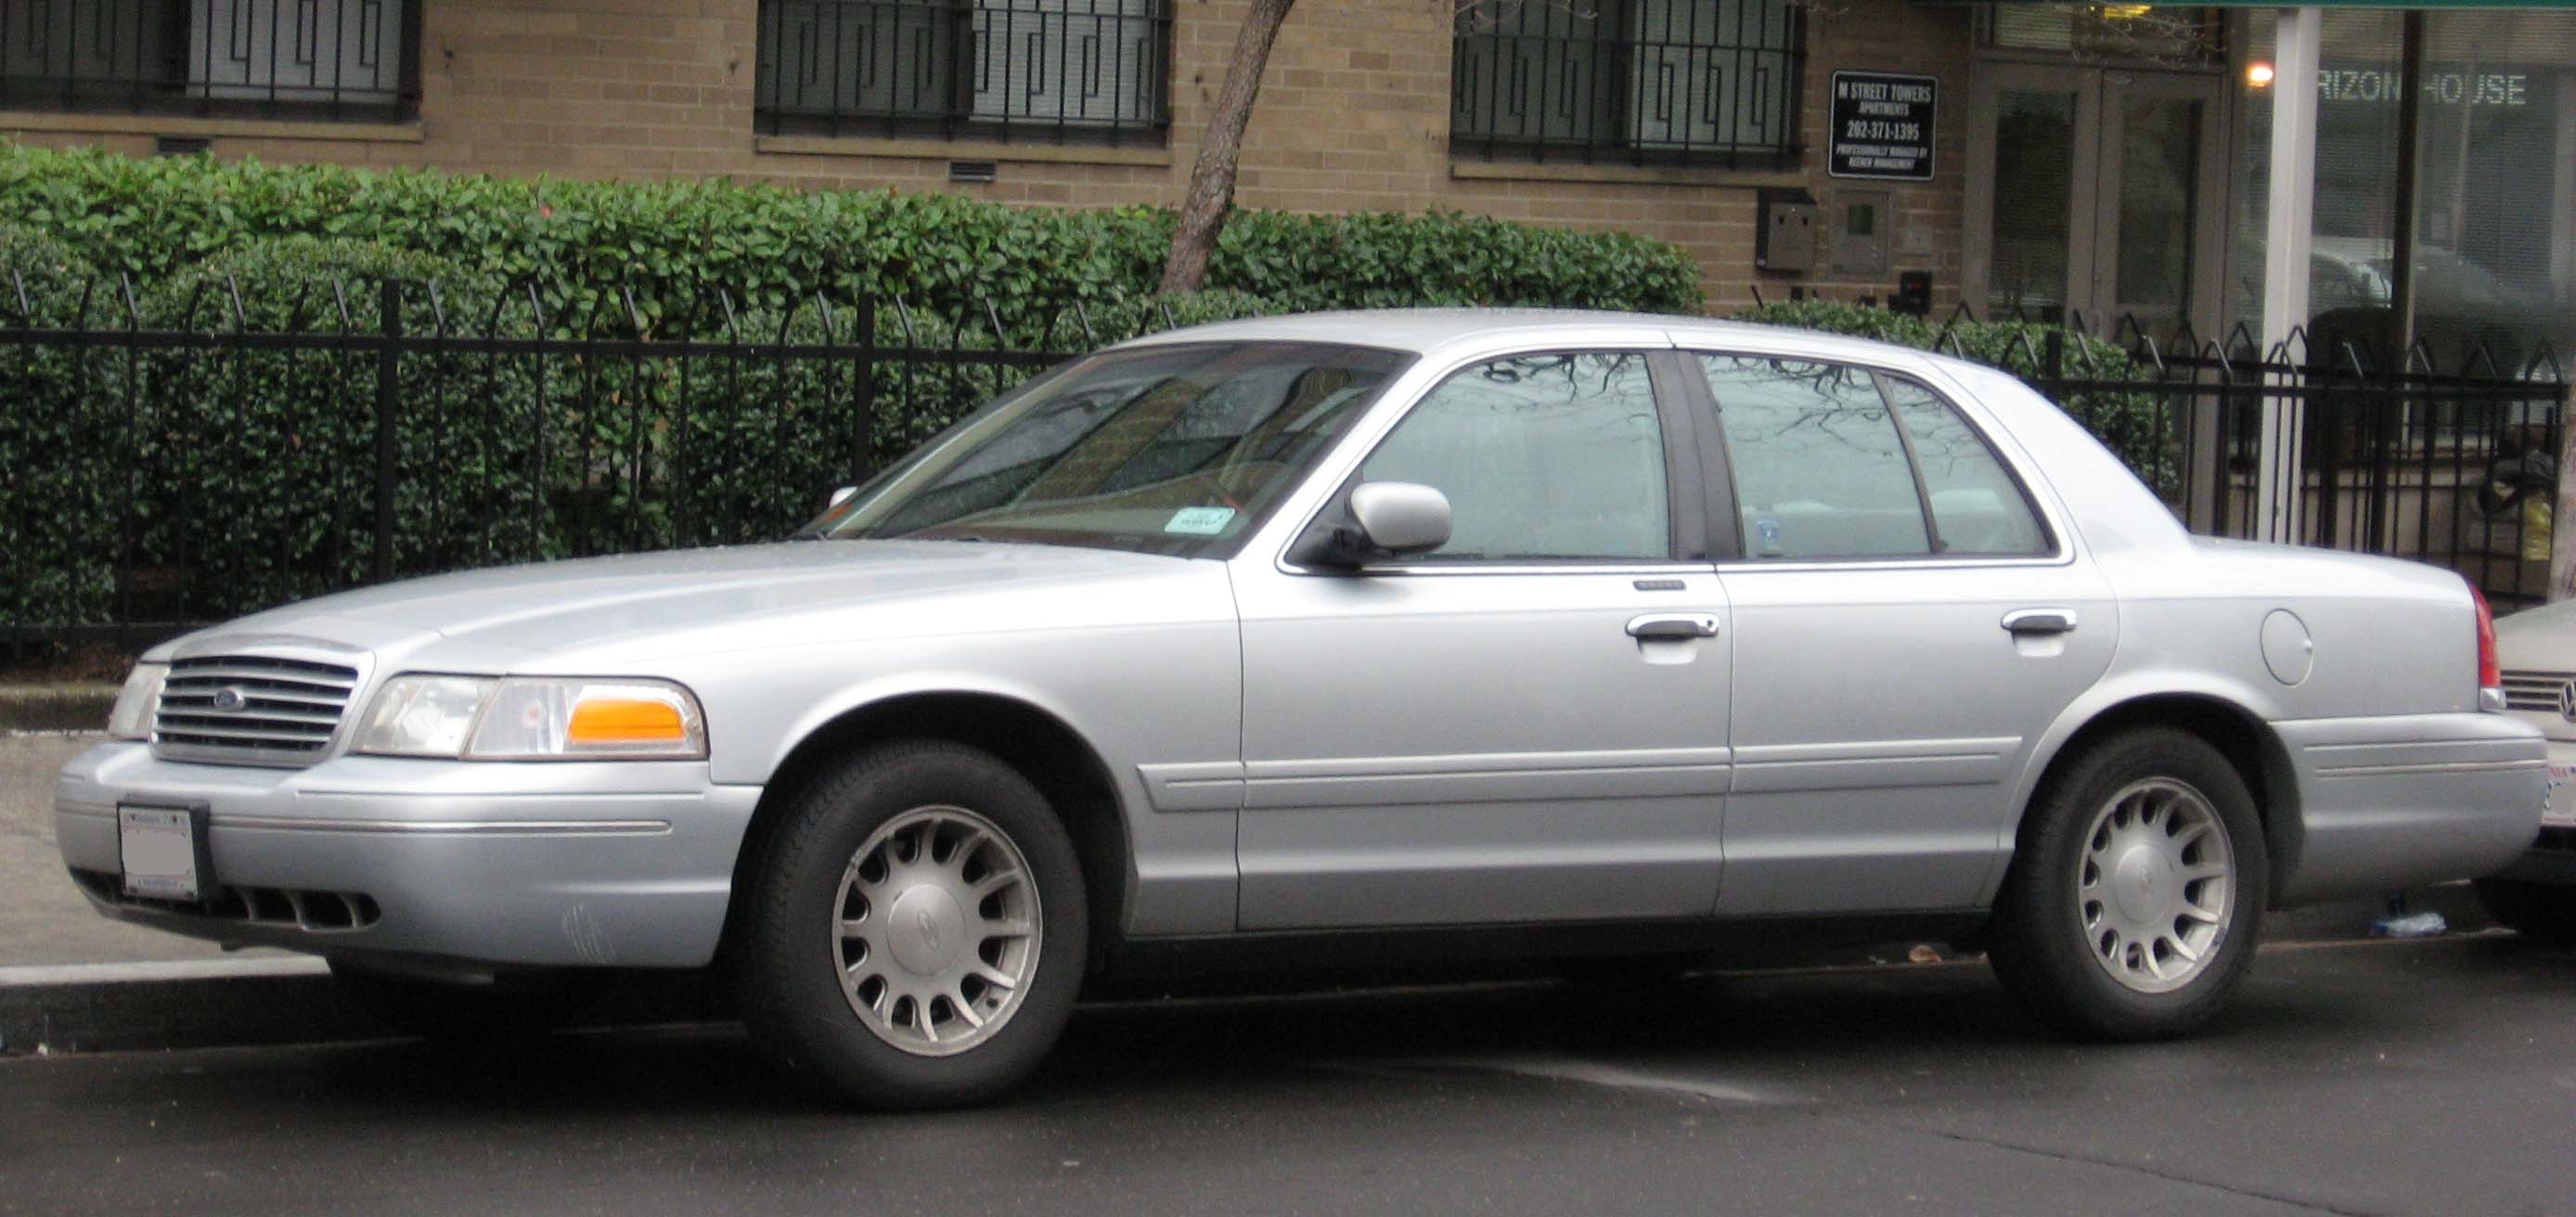 2001 Ford Crown Victoria #2